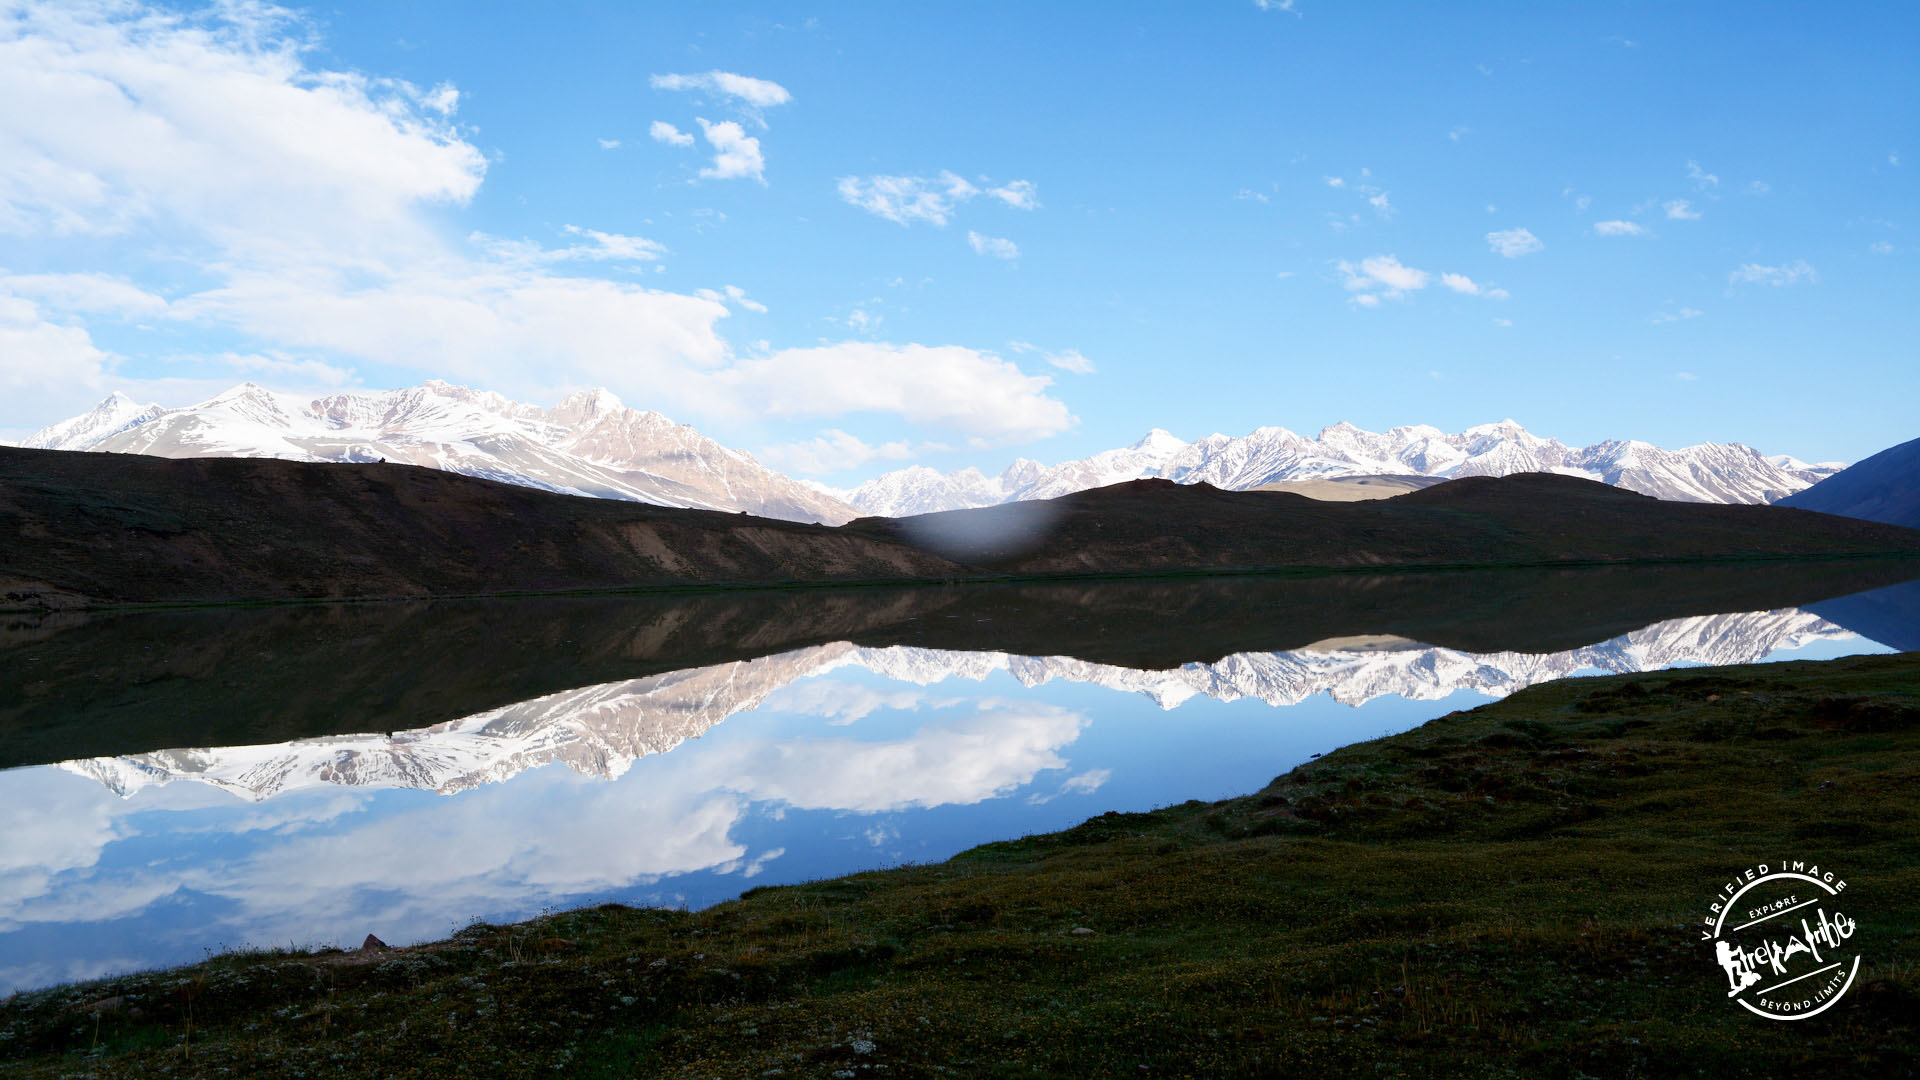 Copy of Chandertal Lake 25 - Hampta Pass